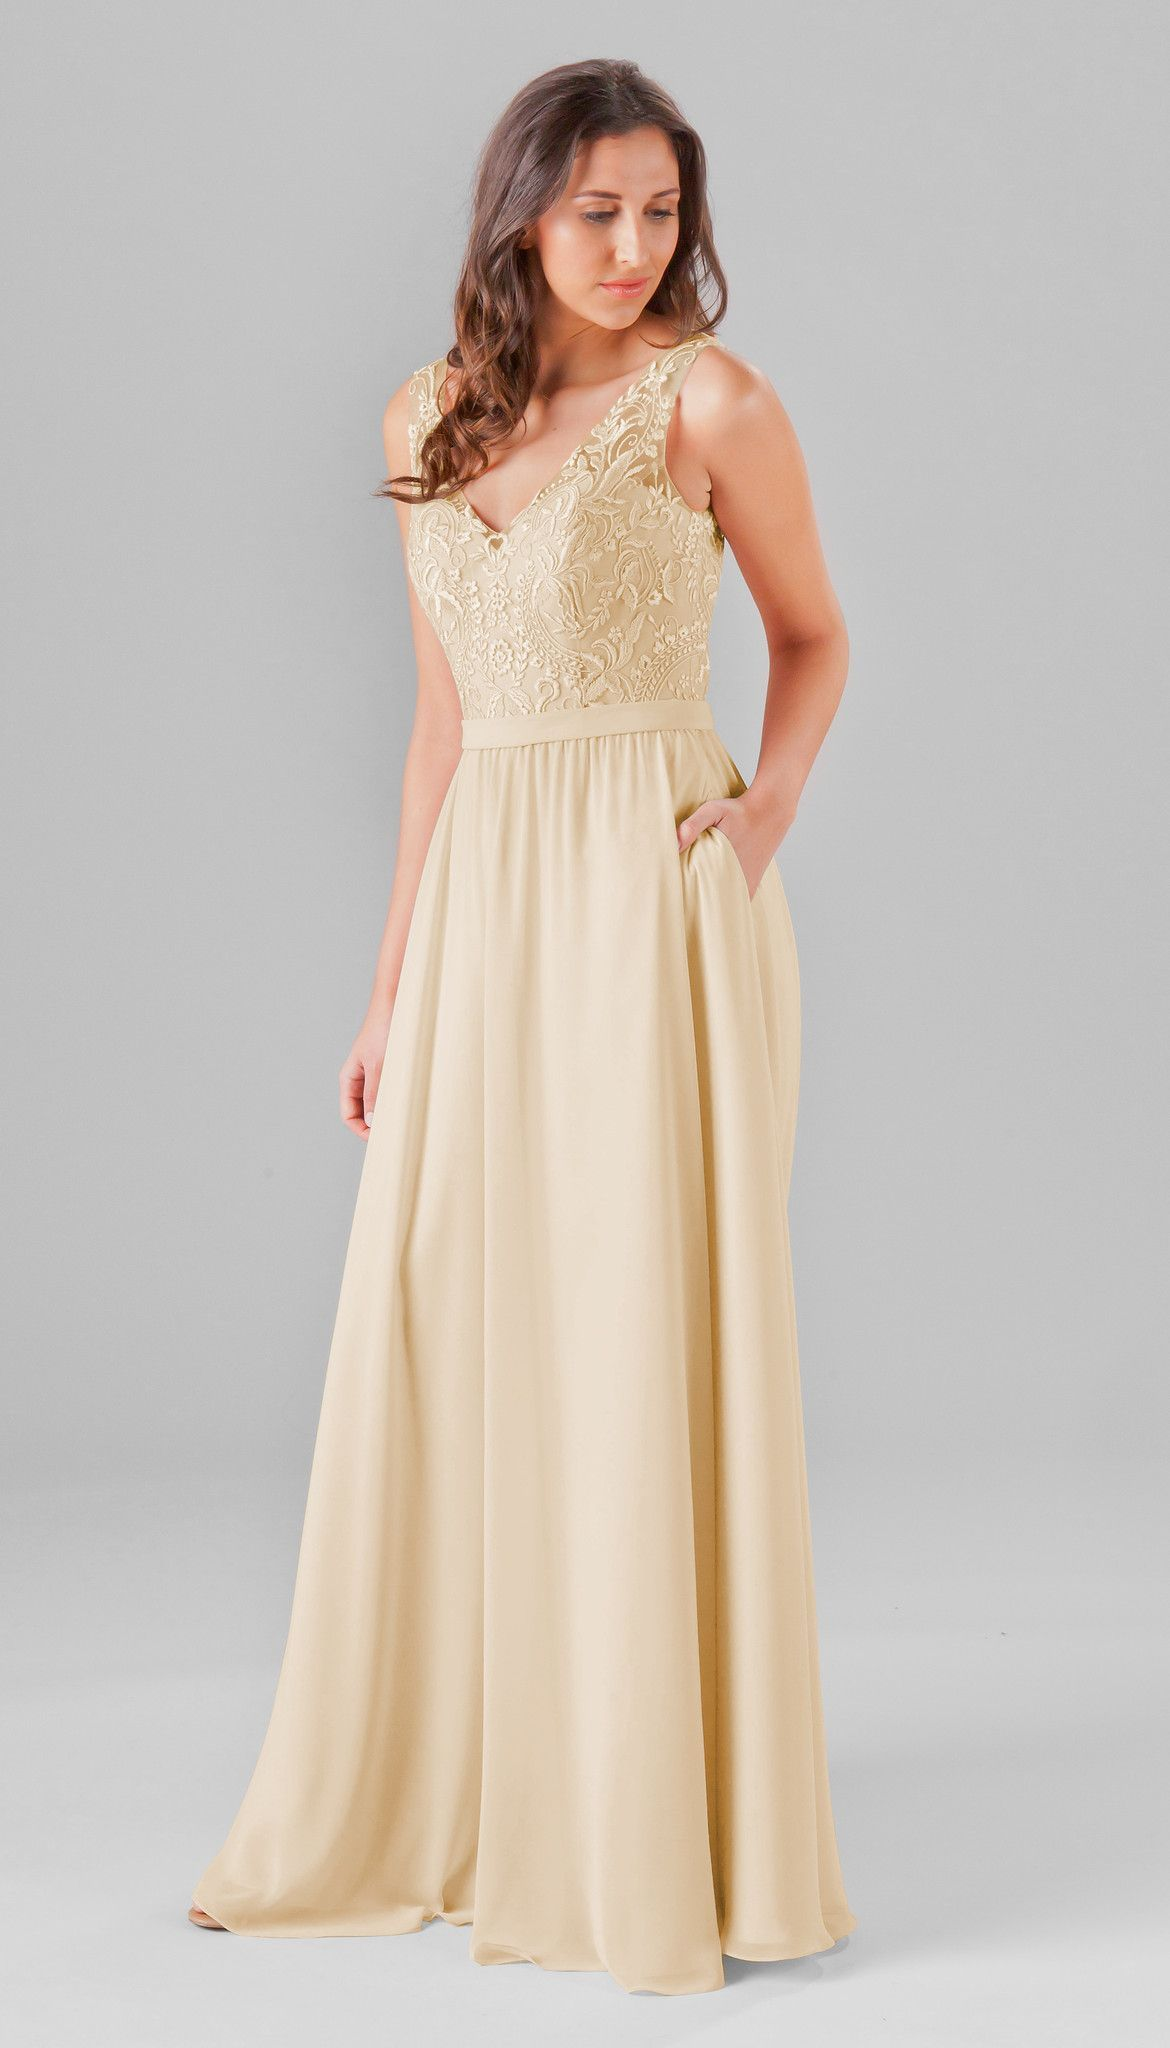 Wren wrens lace bridesmaids and wedding wedding wren embroidered lace bridesmaid dress ombrellifo Gallery